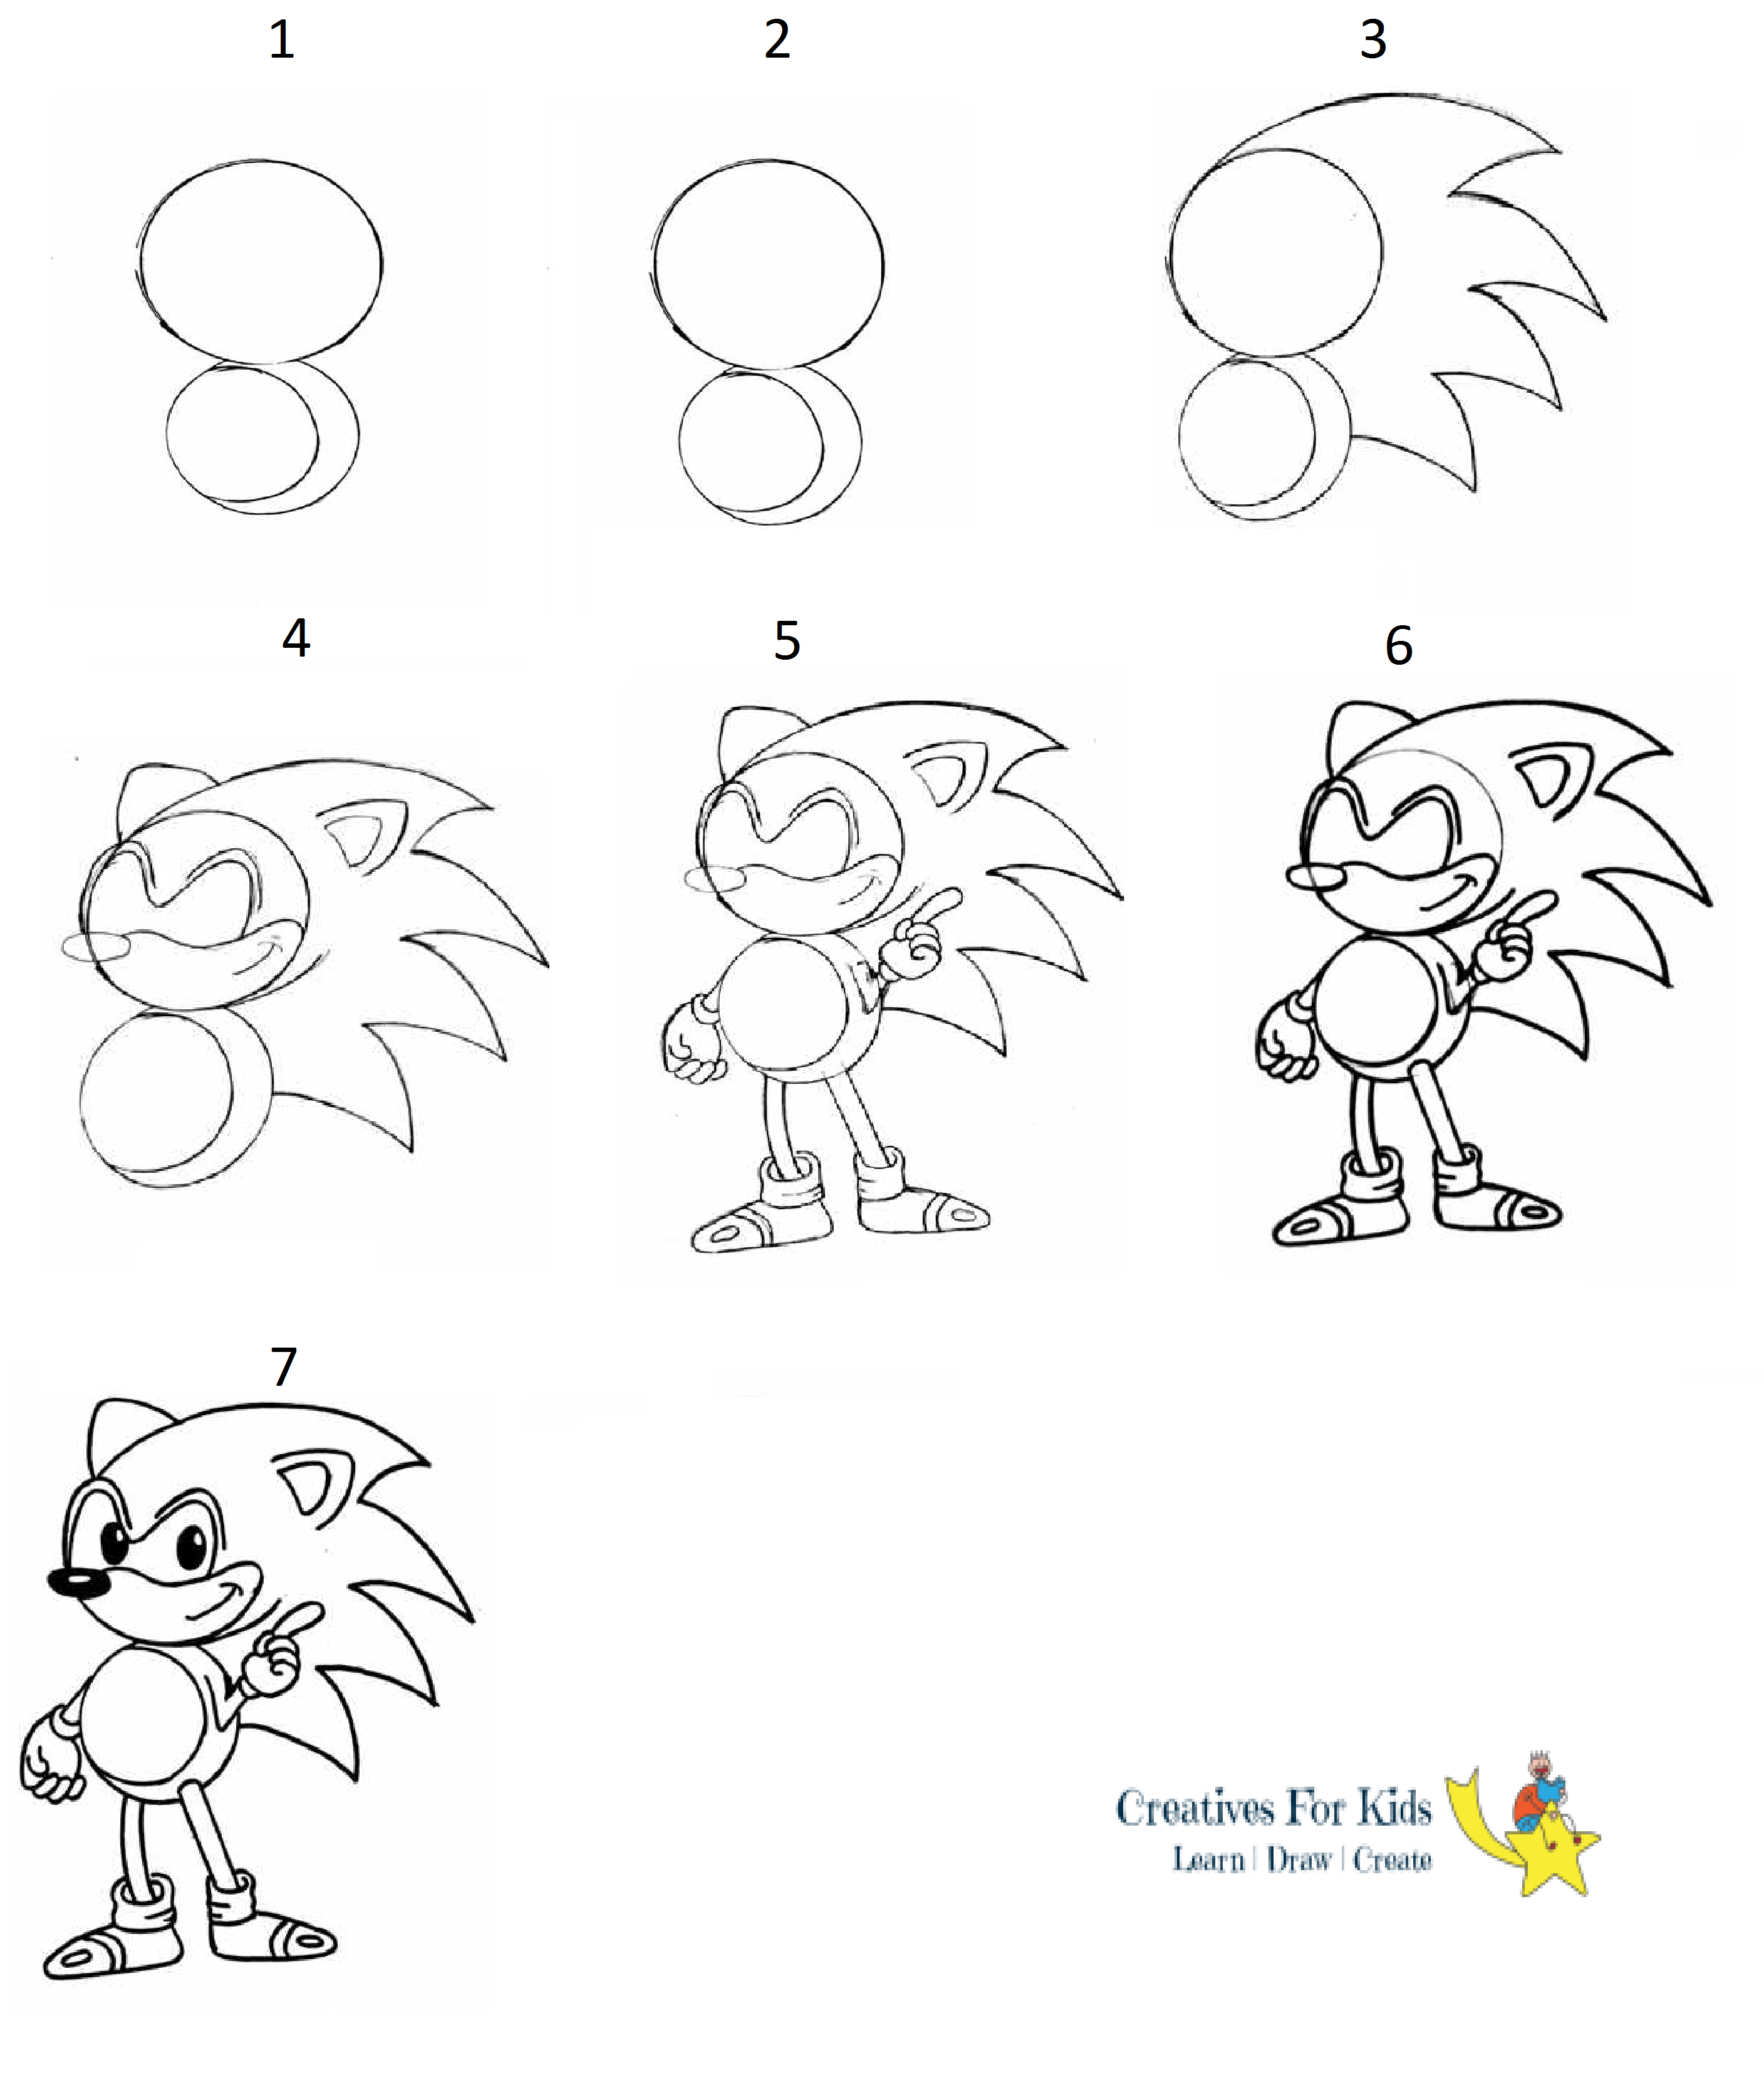 How To Draw Sonic The Hedgehog Step By Step Tutorial